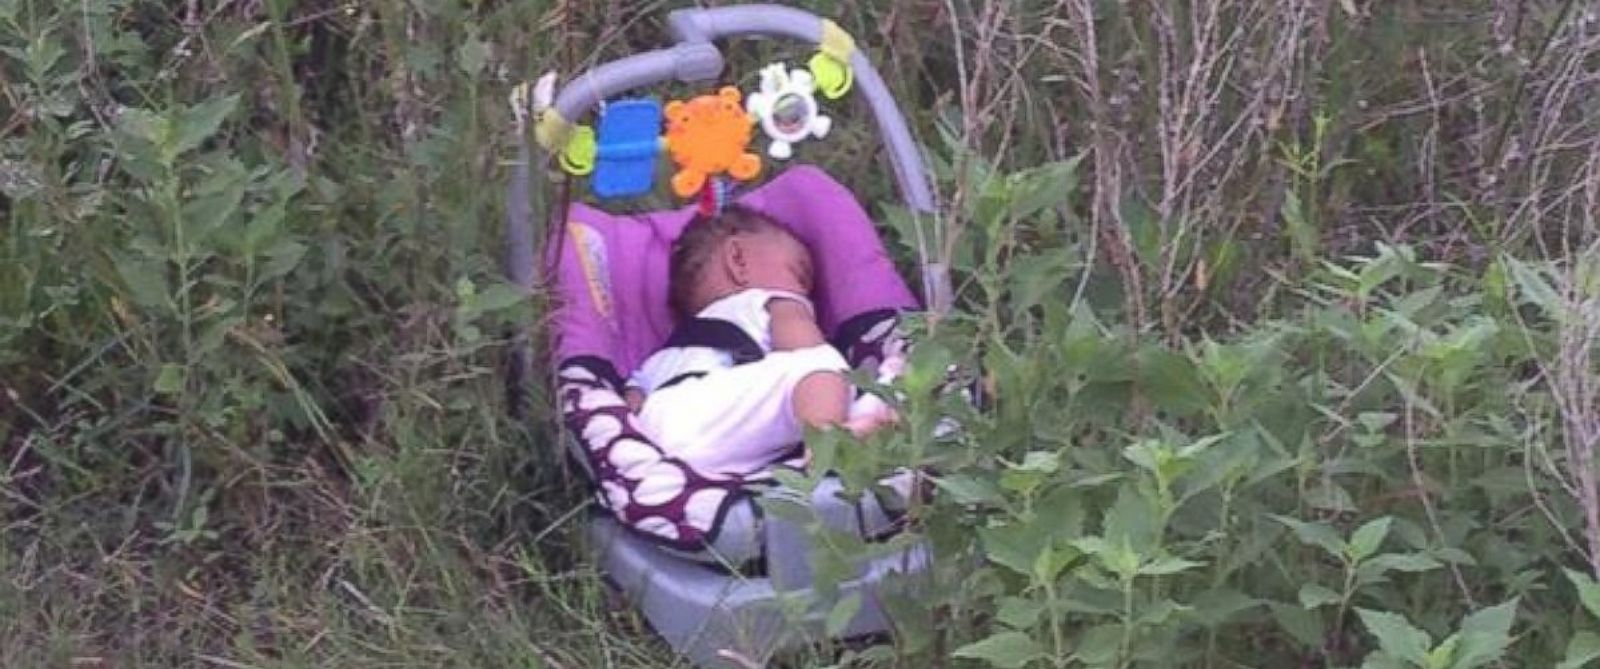 PHOTO: A Houston area jogger found 8-month-old Genesis Haley safe and sound after she was abducted from a gas station.